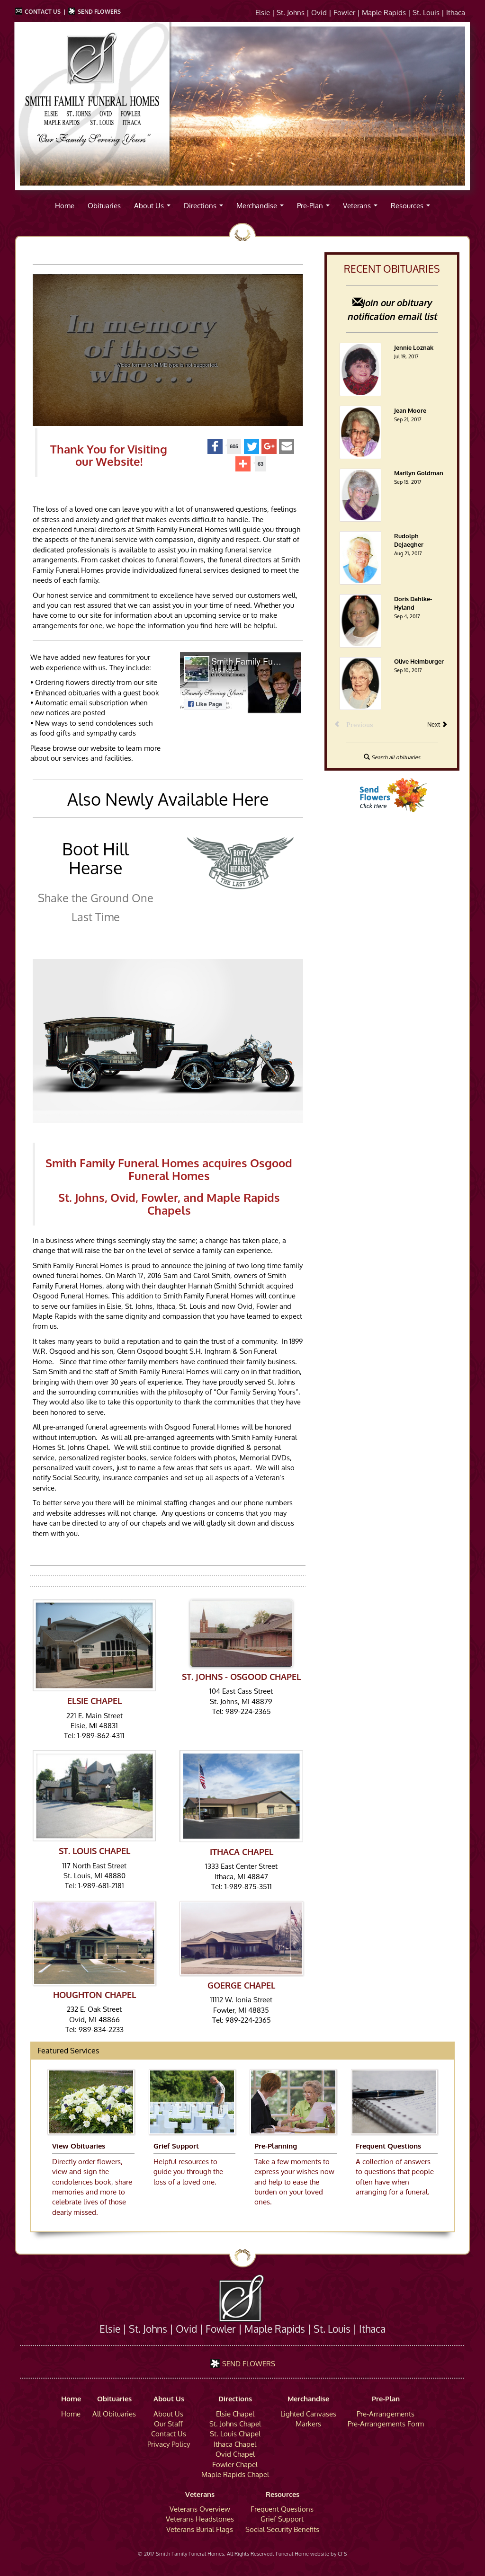 Smithfamilyfuneralhomes Competitors, Revenue and Employees - Owler ...